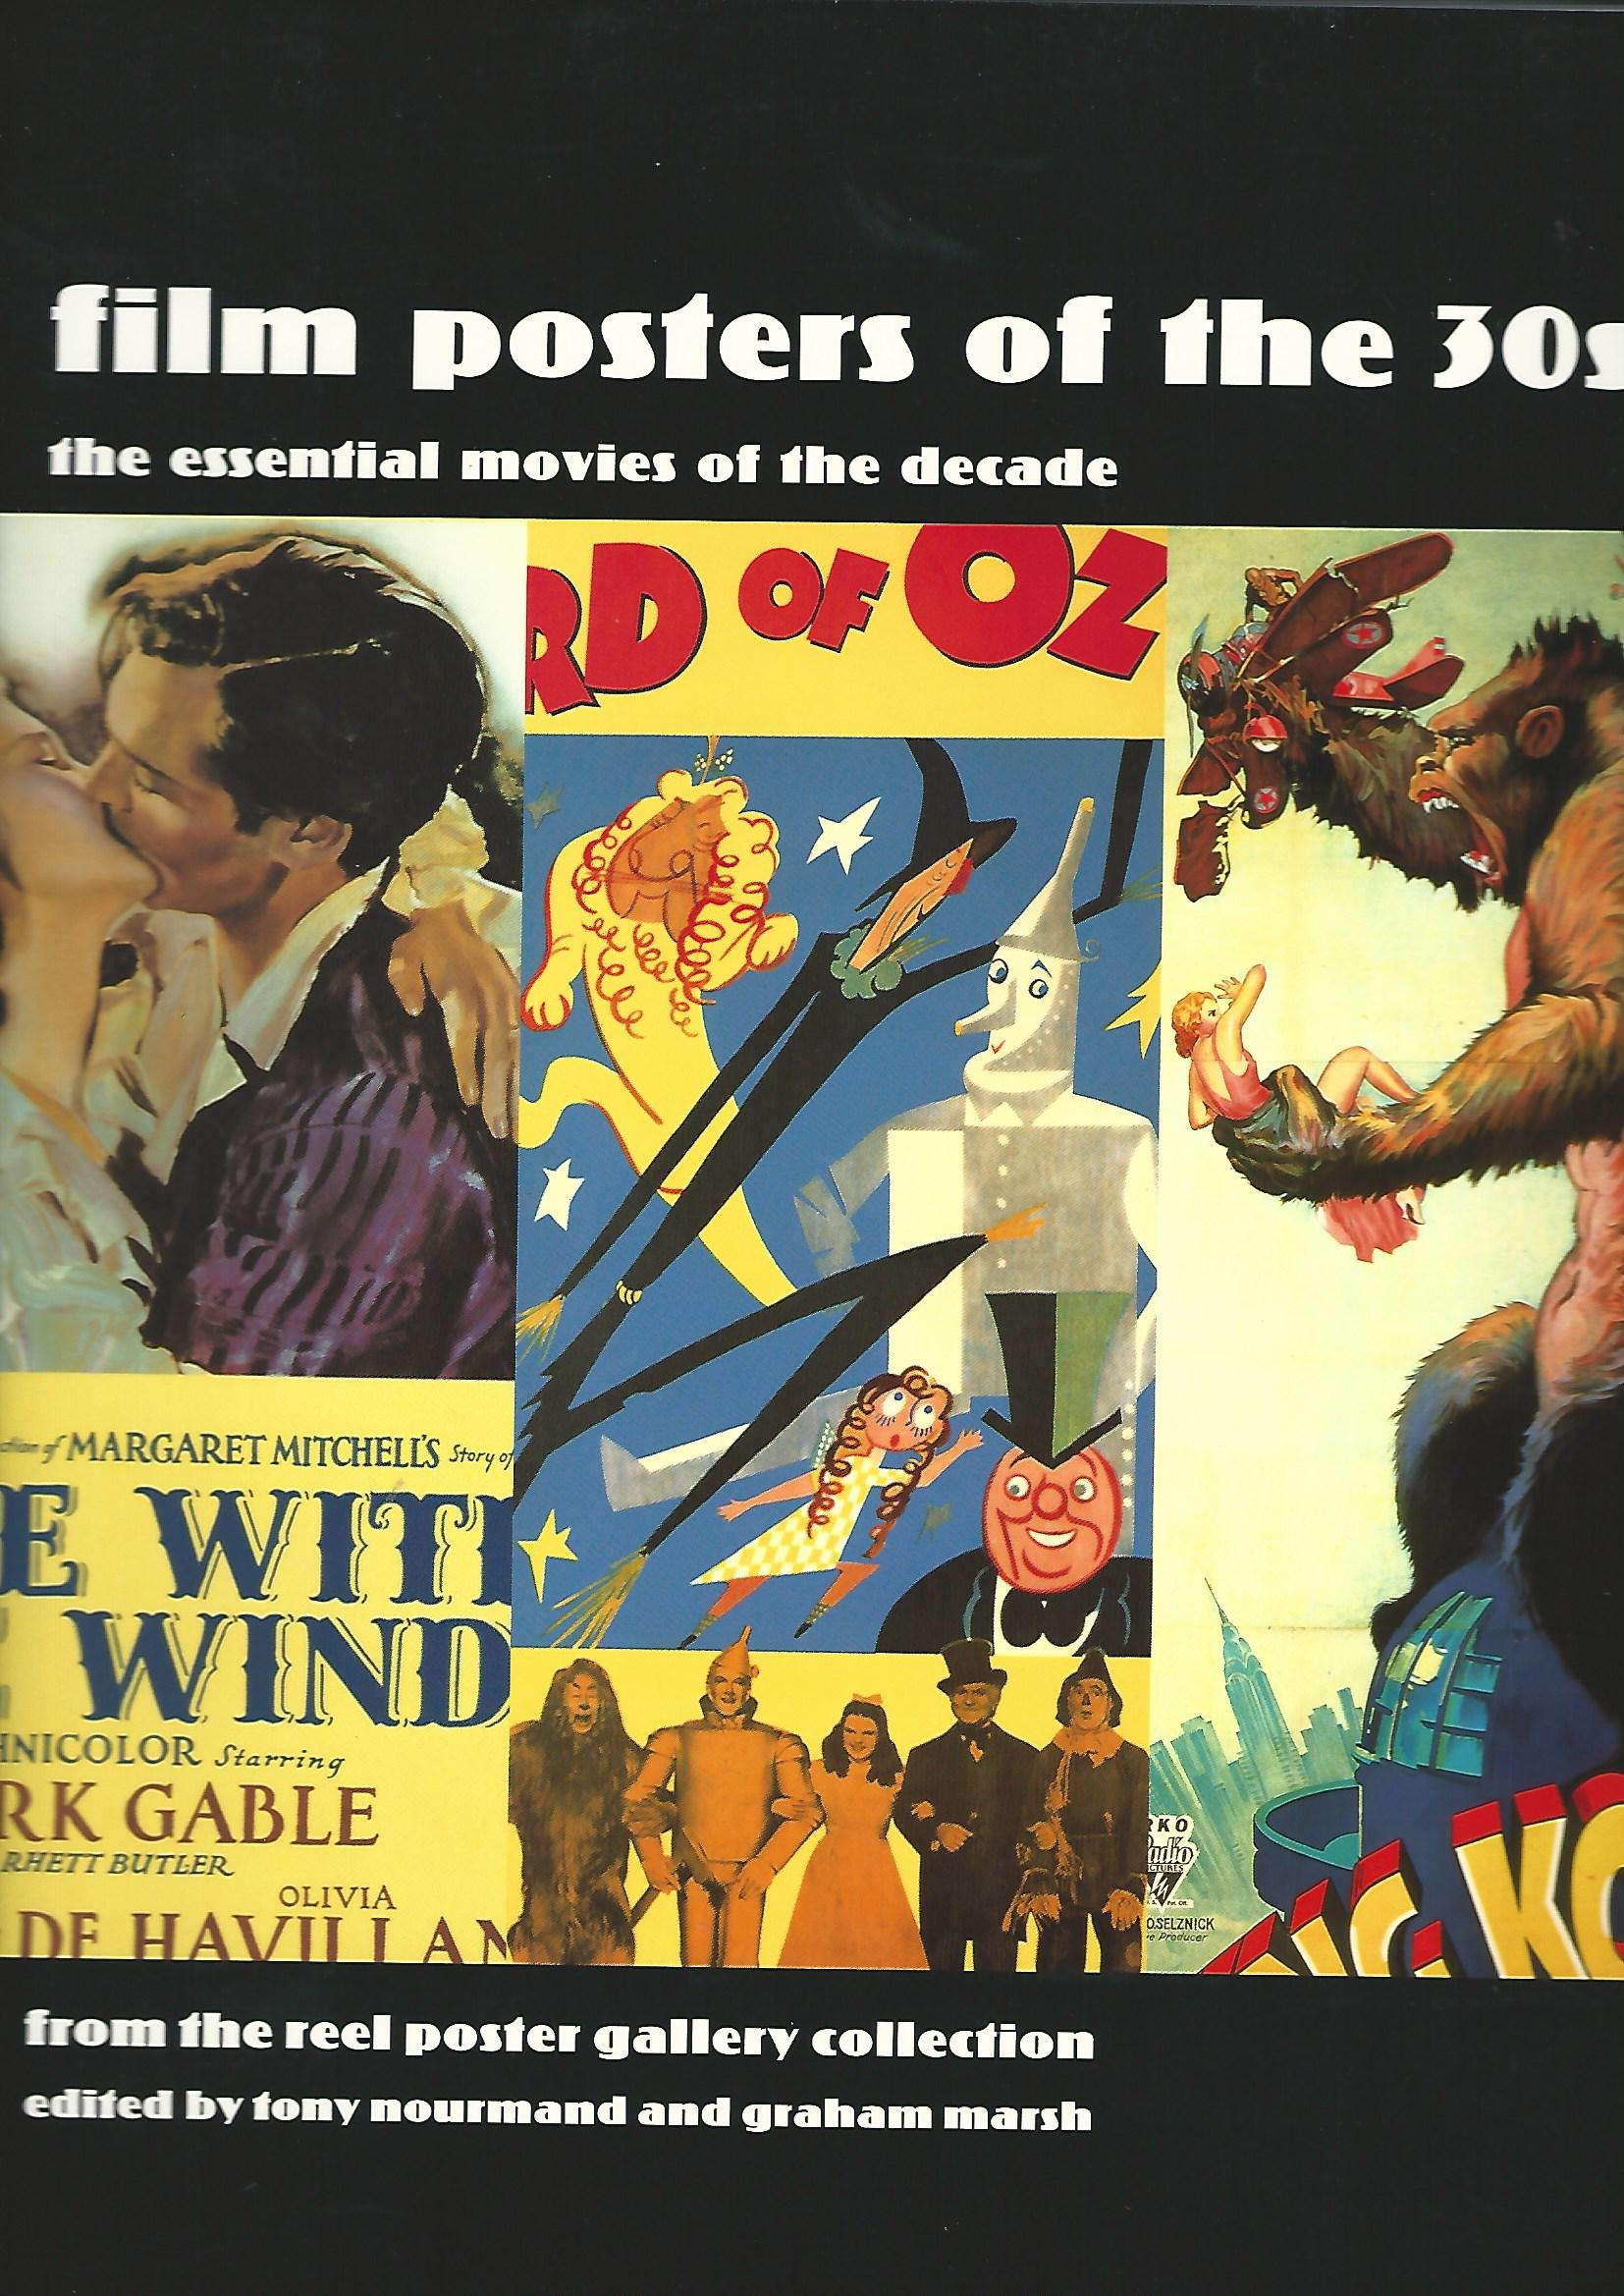 Image for Film Posters of the 30s. The Essential Movies of the Decade.